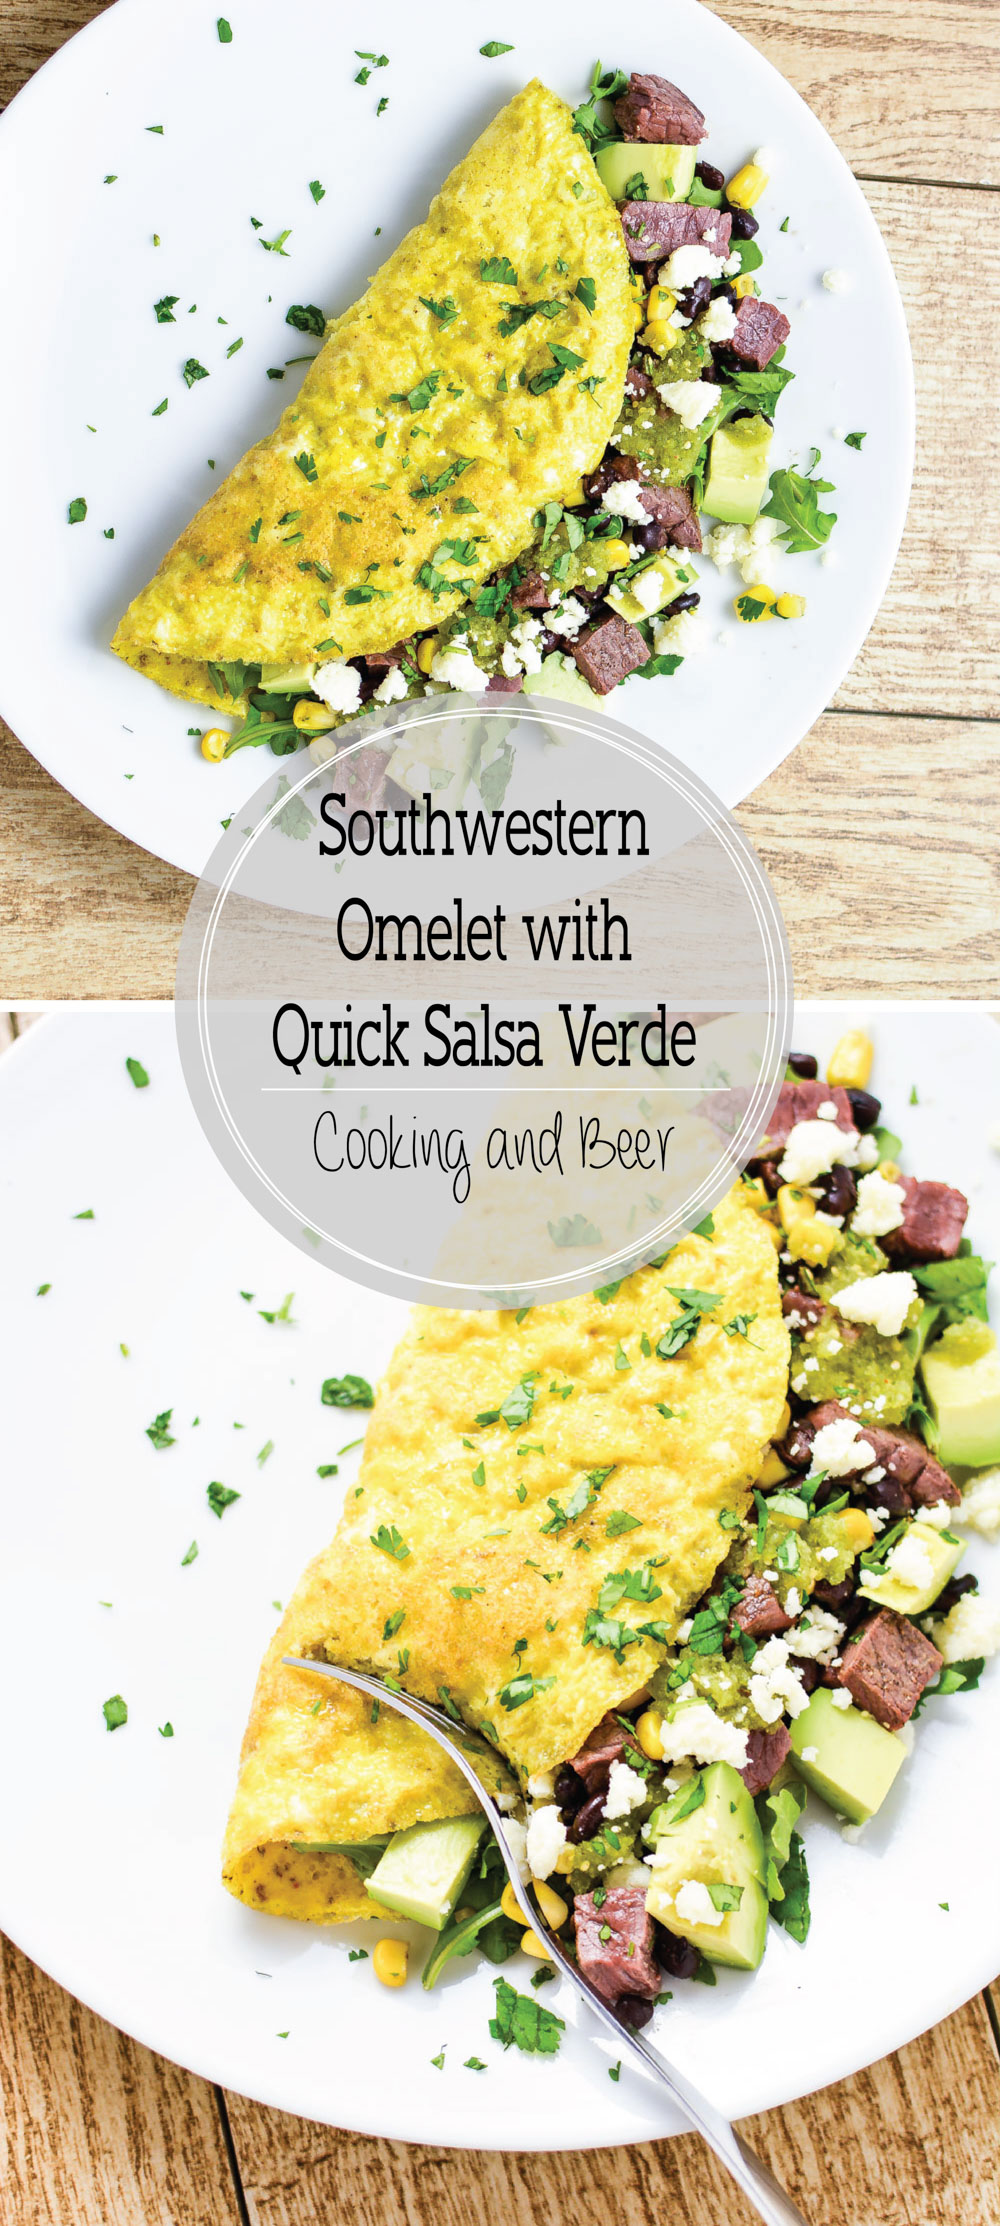 Southwestern Omelet with Quick Salsa Verde is a quick and delicious breakfast or dinner recipe!